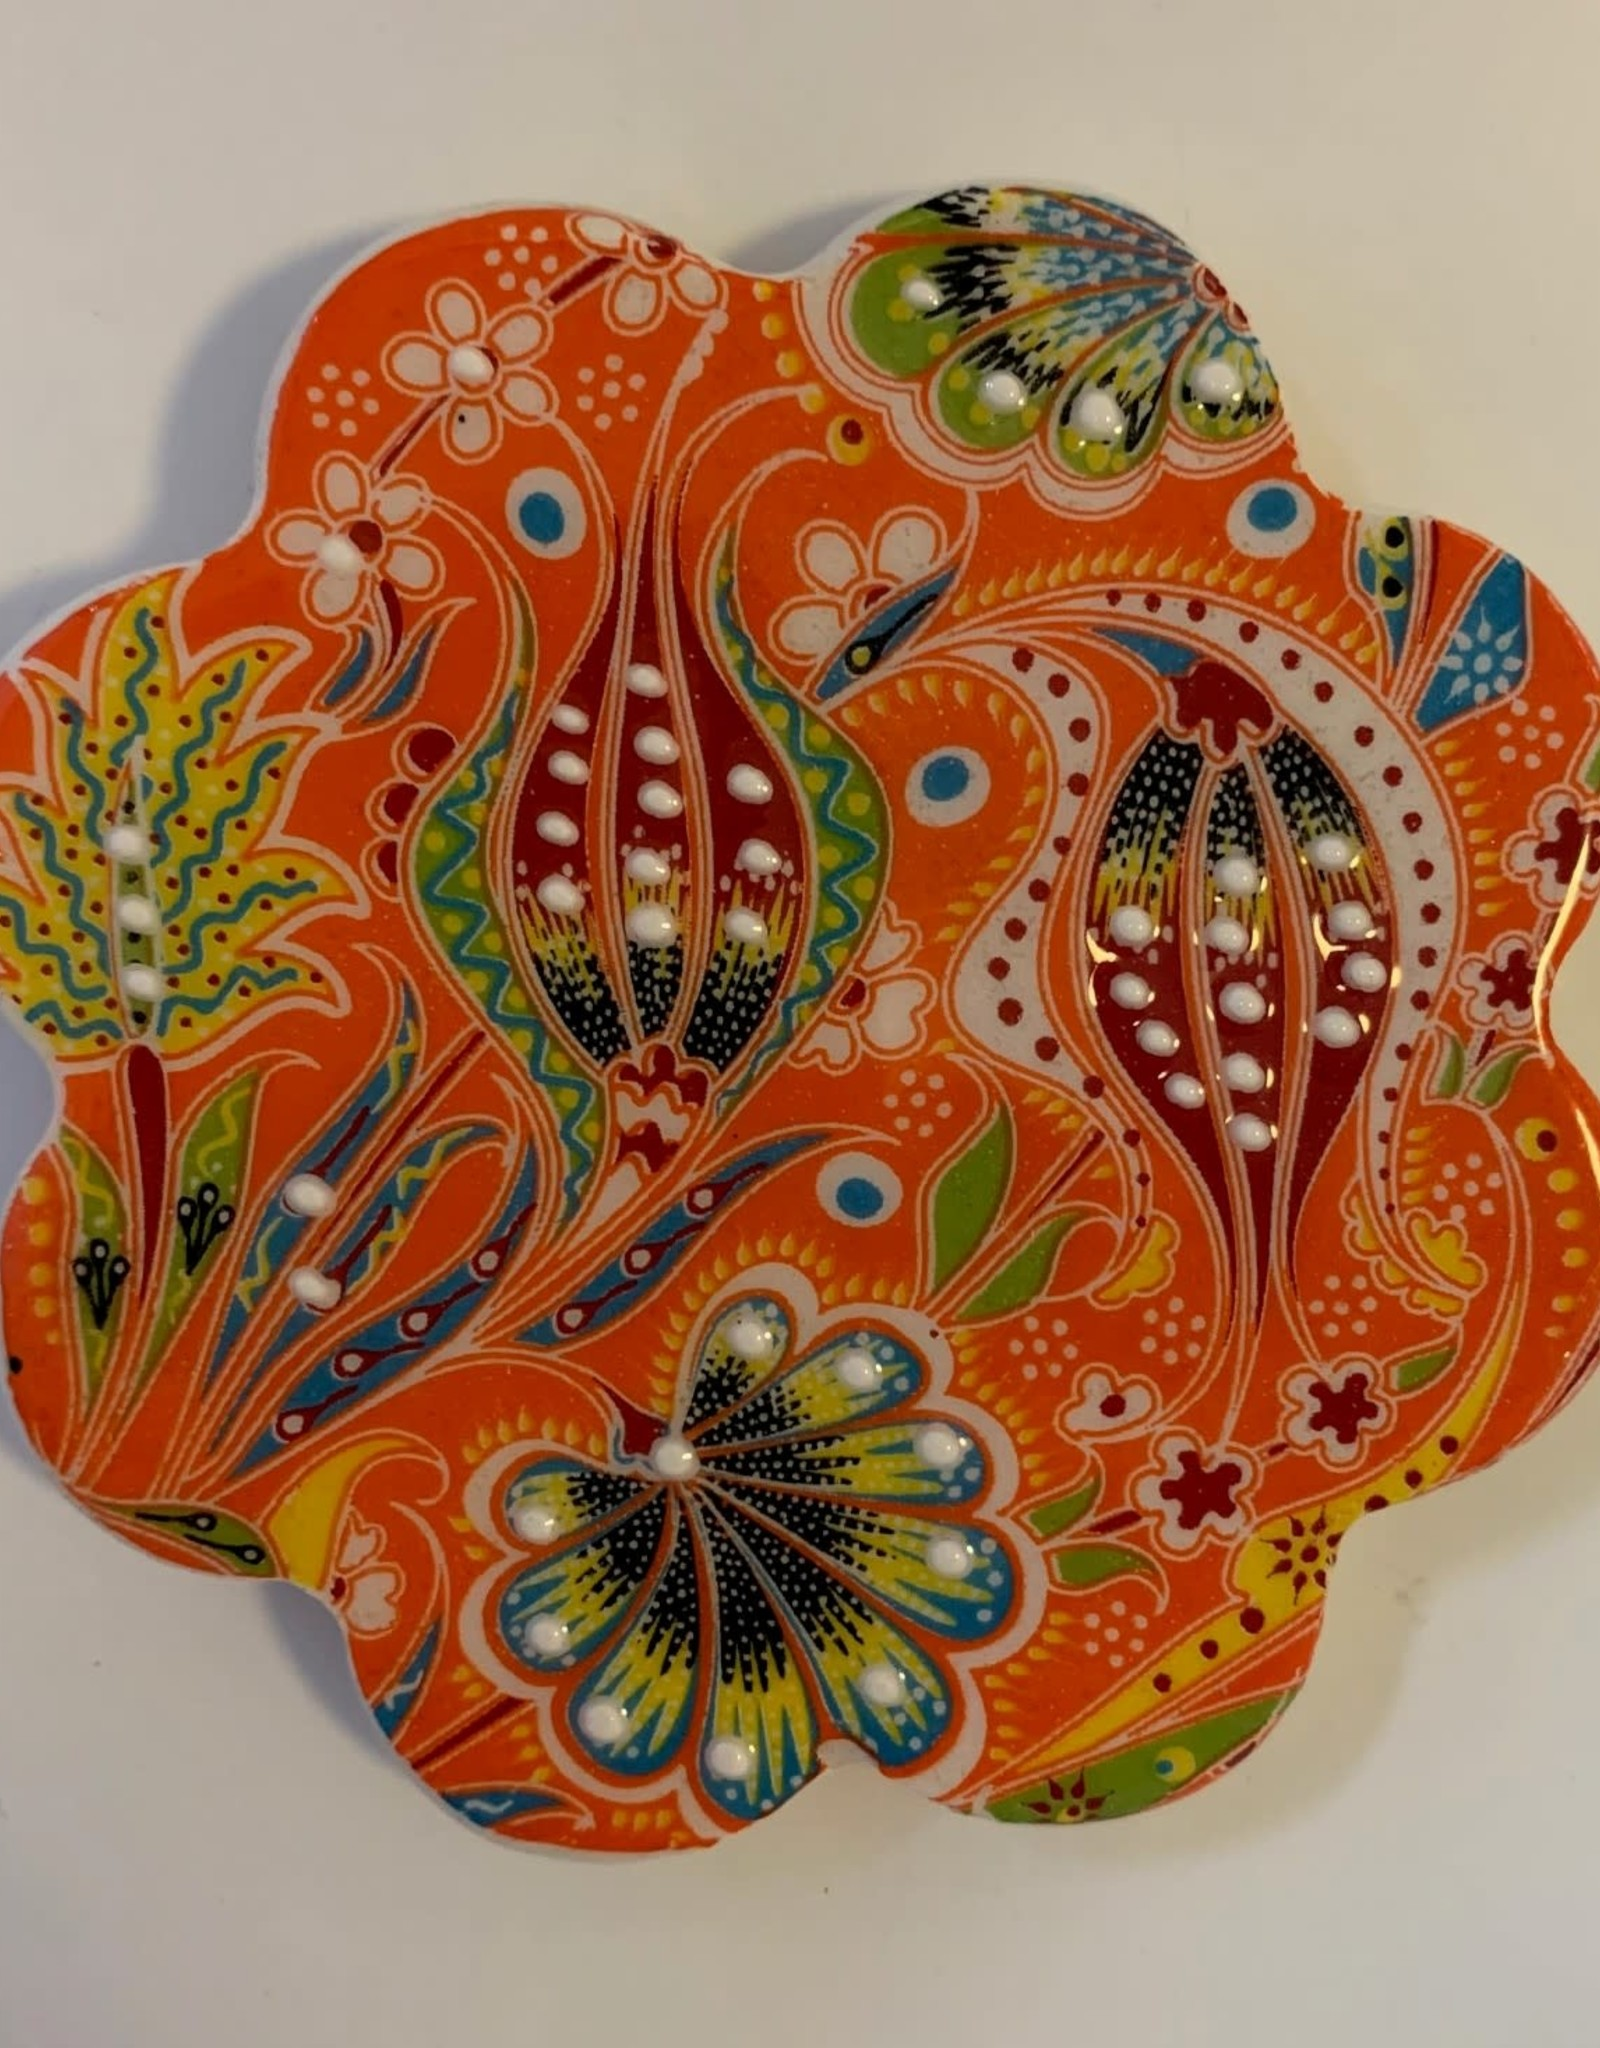 Hand Painted Relief Ceramic Coaster, Orange